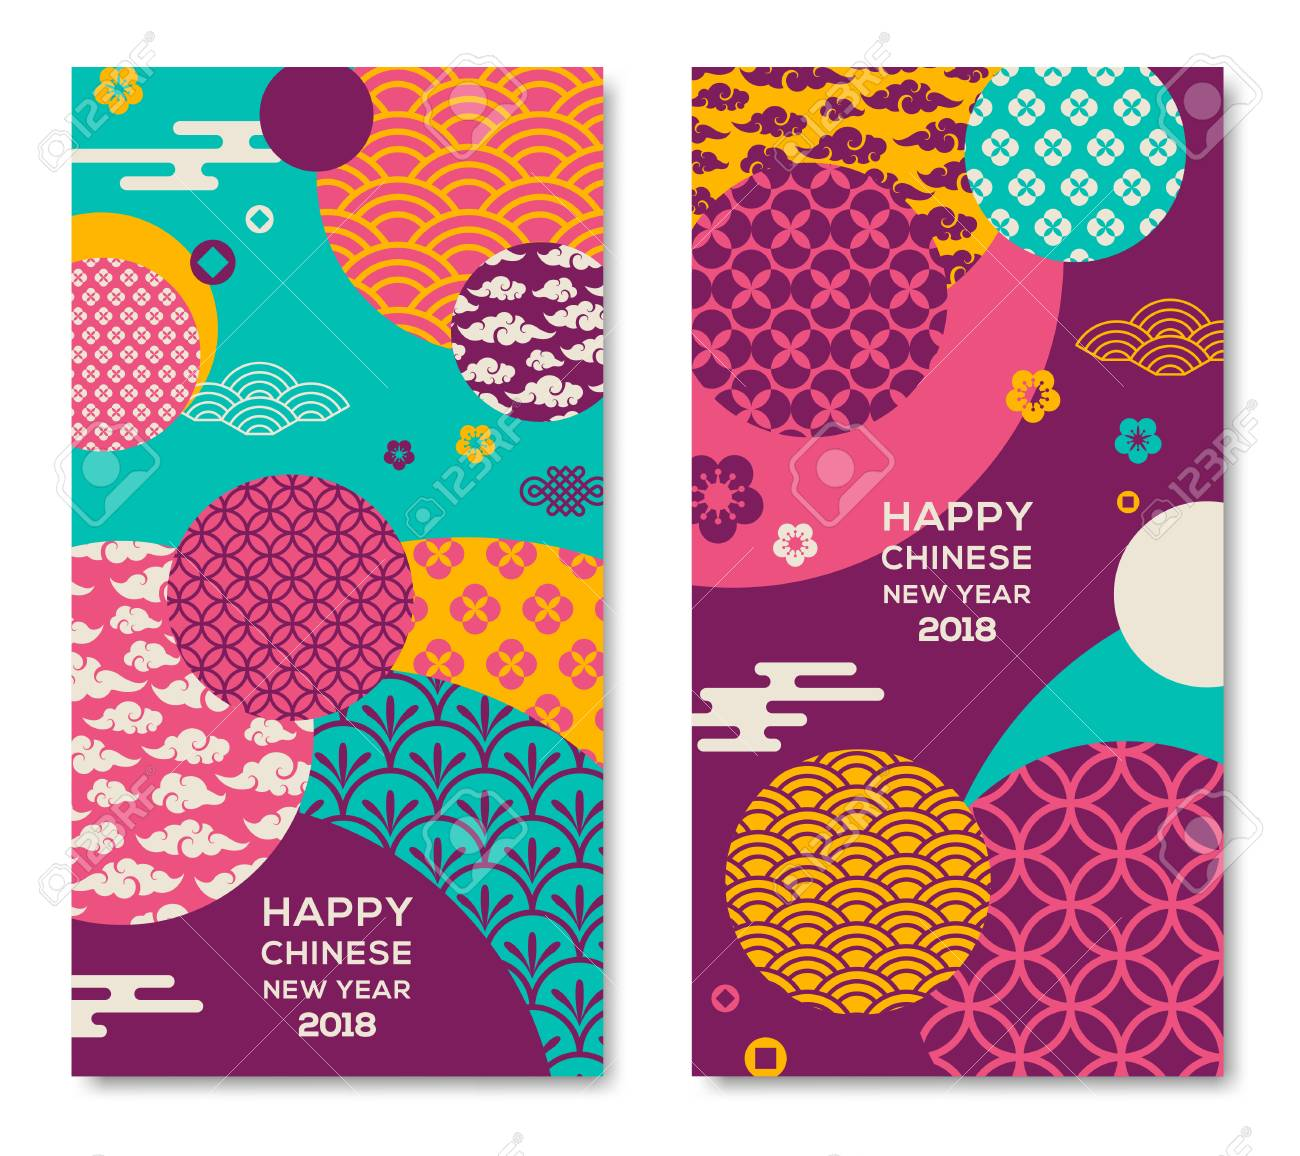 Vertical Banners Set with 2018 Chinese New Year Elements. Vector illustration. Asian Clouds and Patterns in Modern Style, geometric ornate shapes - 91044583